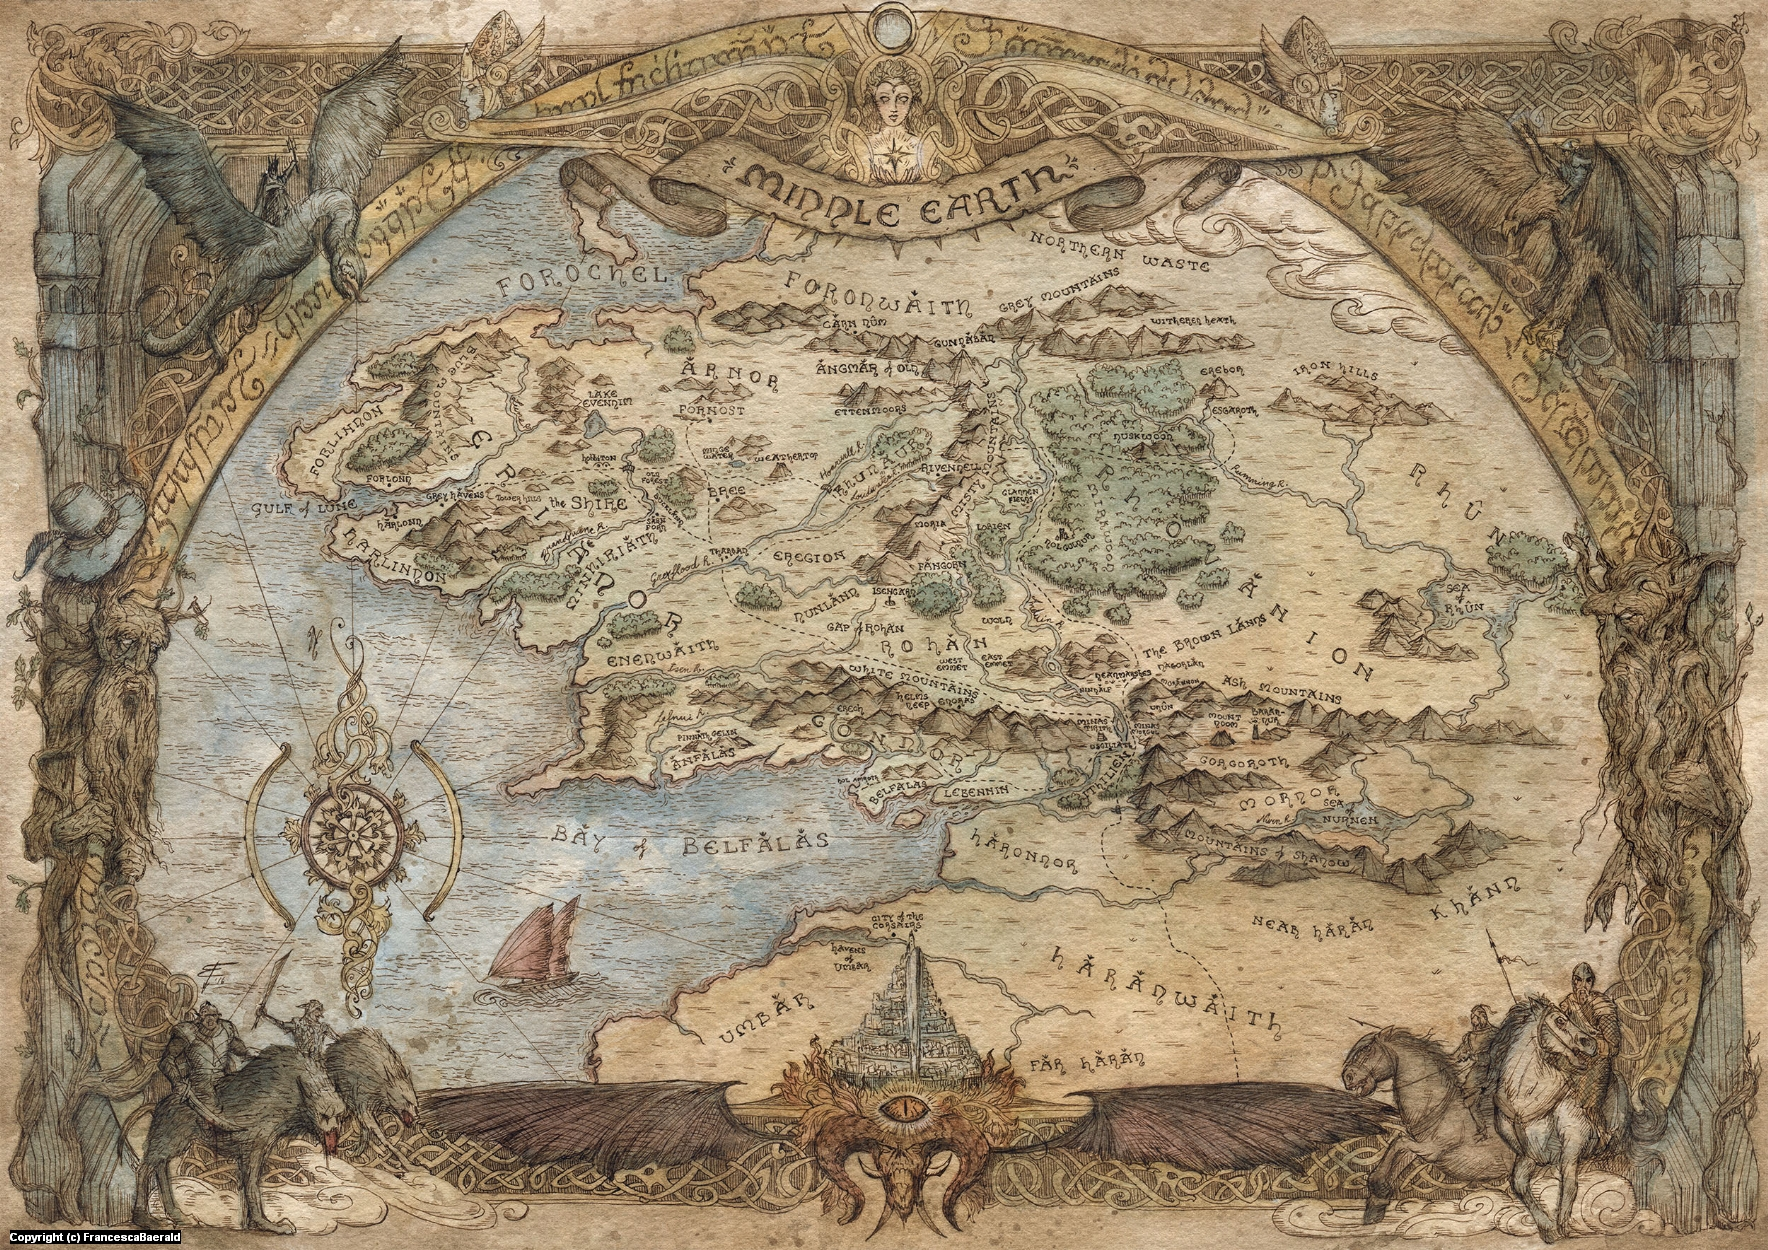 Map of Middle Earth Artwork by Francesca Baerald